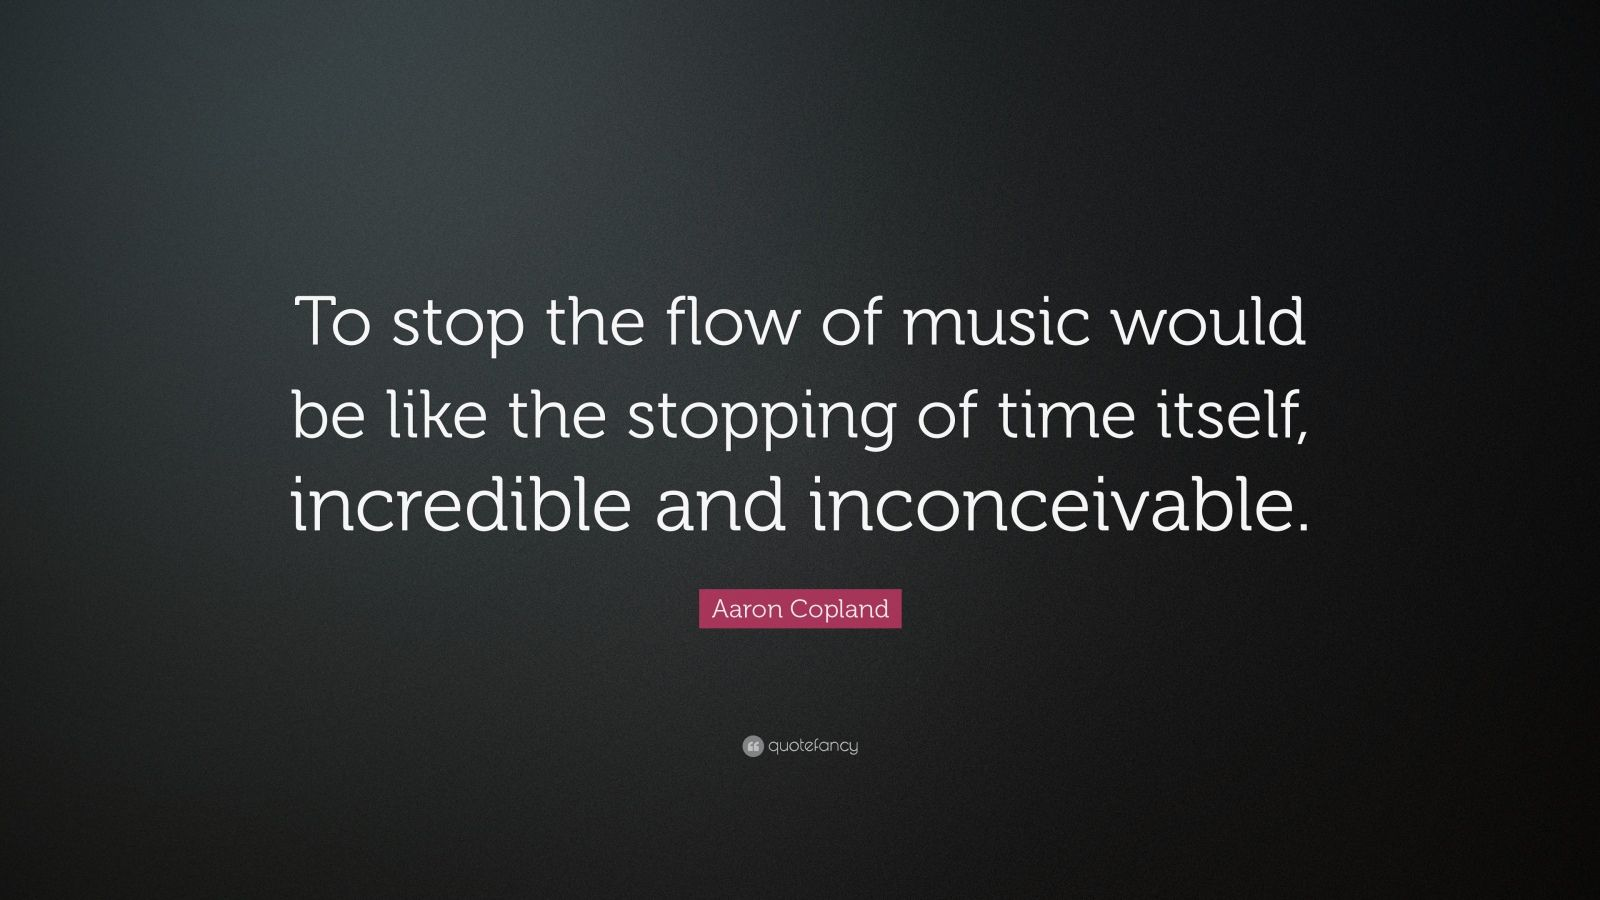 Music Quotes: U201cTo Stop The Flow Of Music Would Be Like The Stopping Of